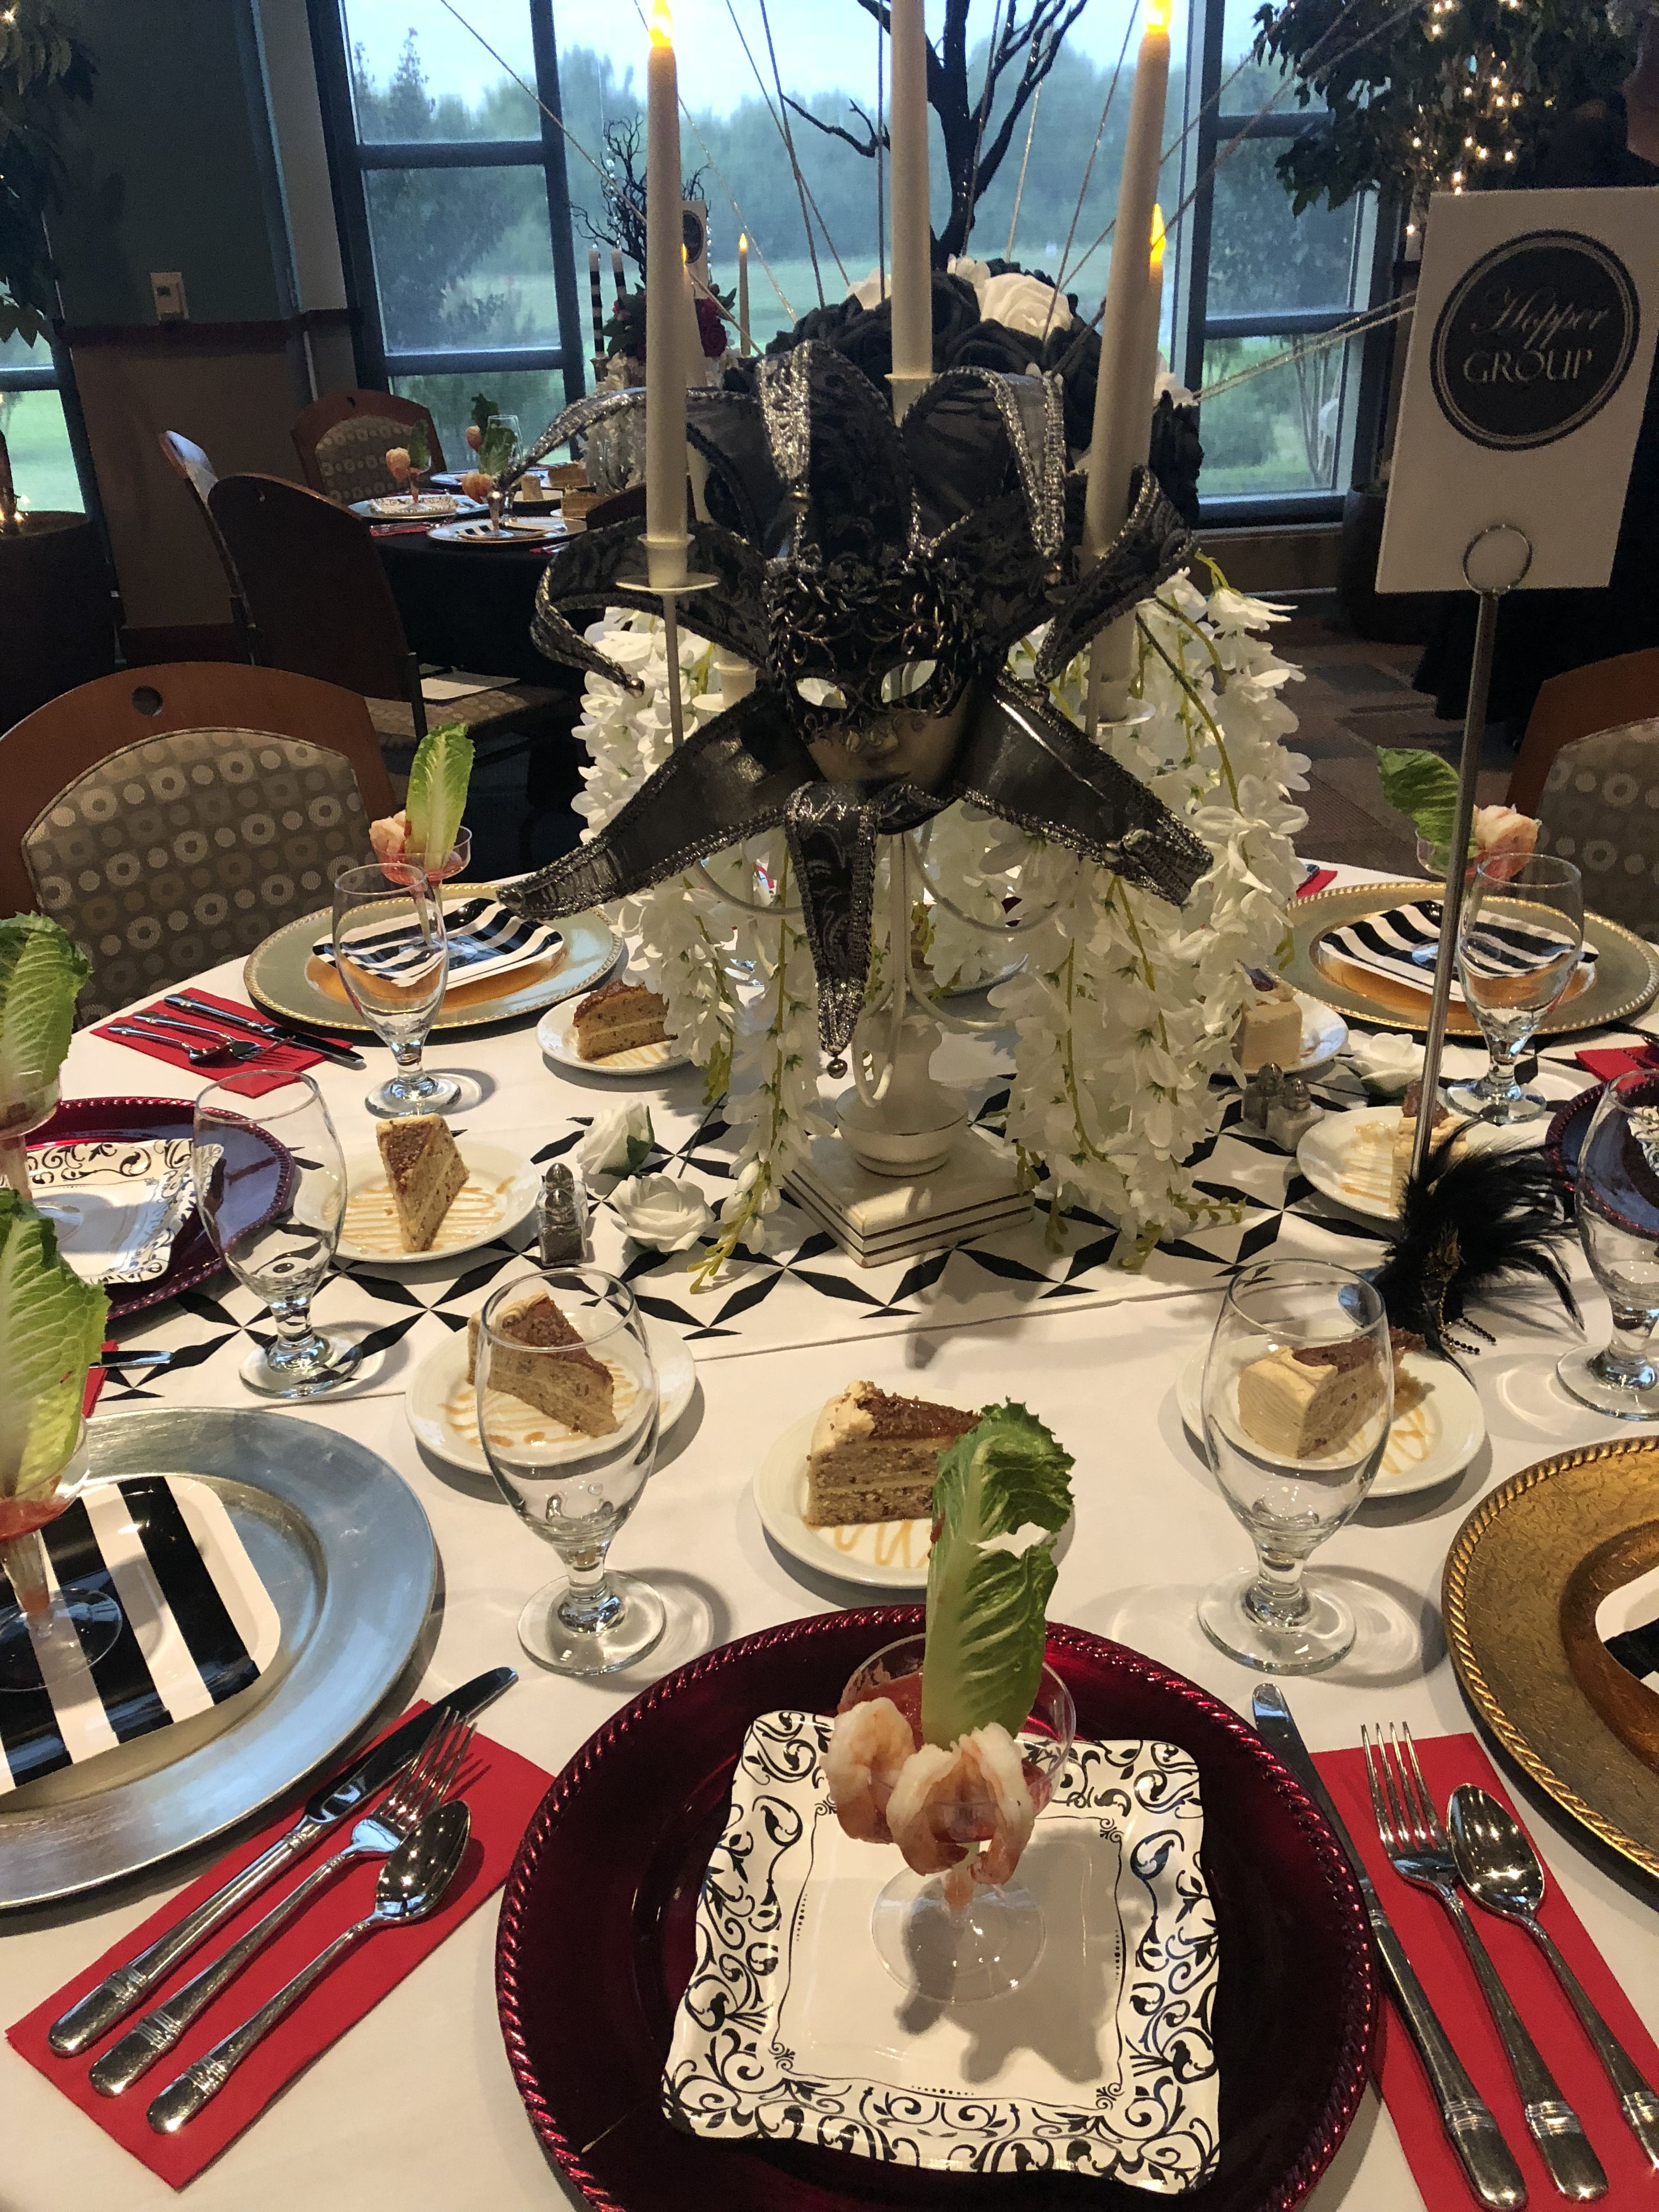 Astounding Masquerade Ball Centerpiece Our Projects In 2019 Download Free Architecture Designs Scobabritishbridgeorg